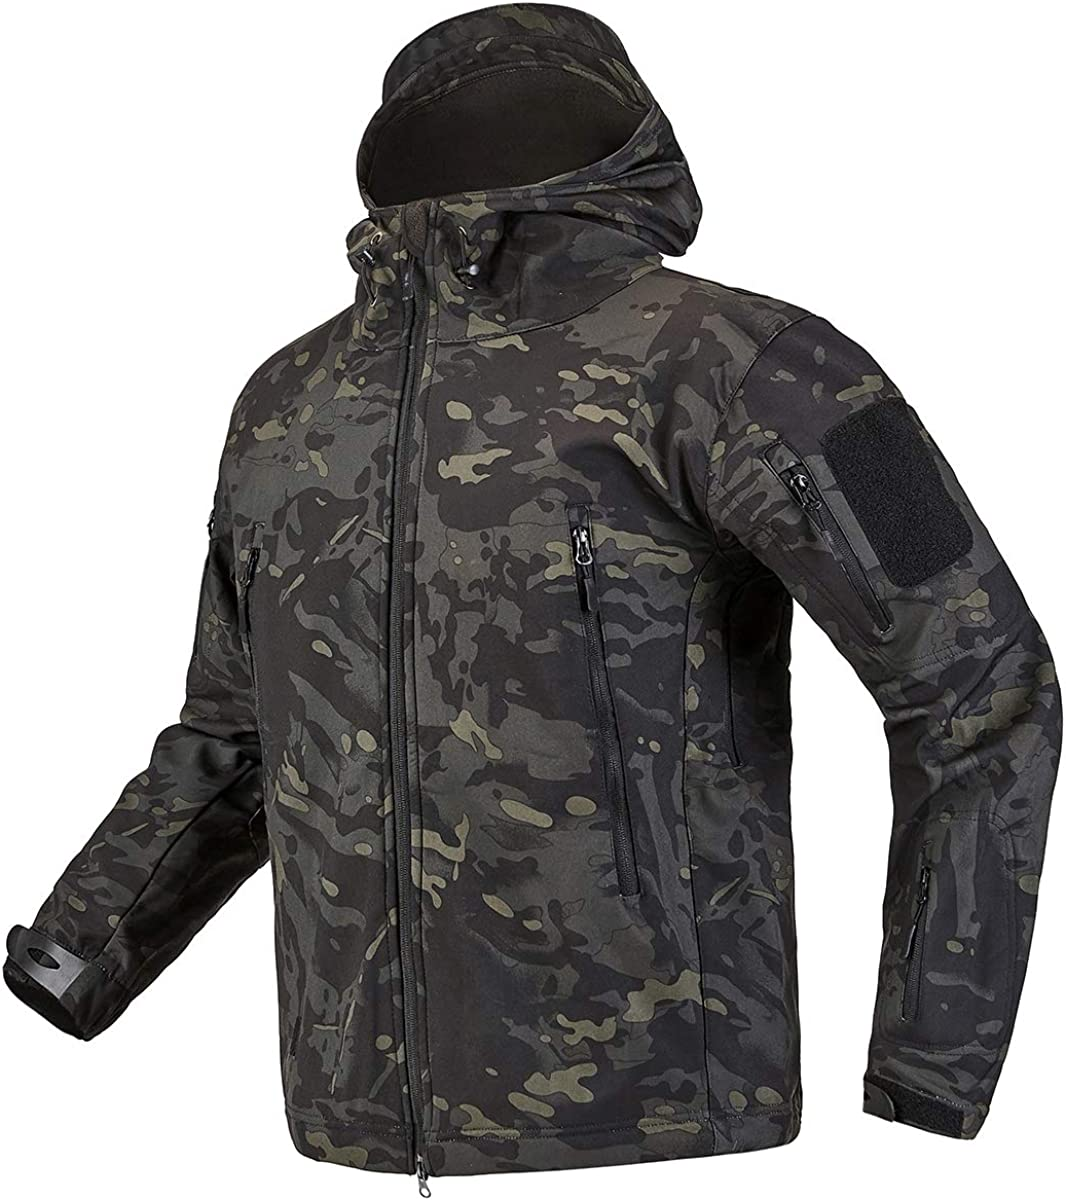 CARWORNIC In stock Men's Tactical 70% OFF Outlet Outdoor Softs Hunting Jacket Waterproof